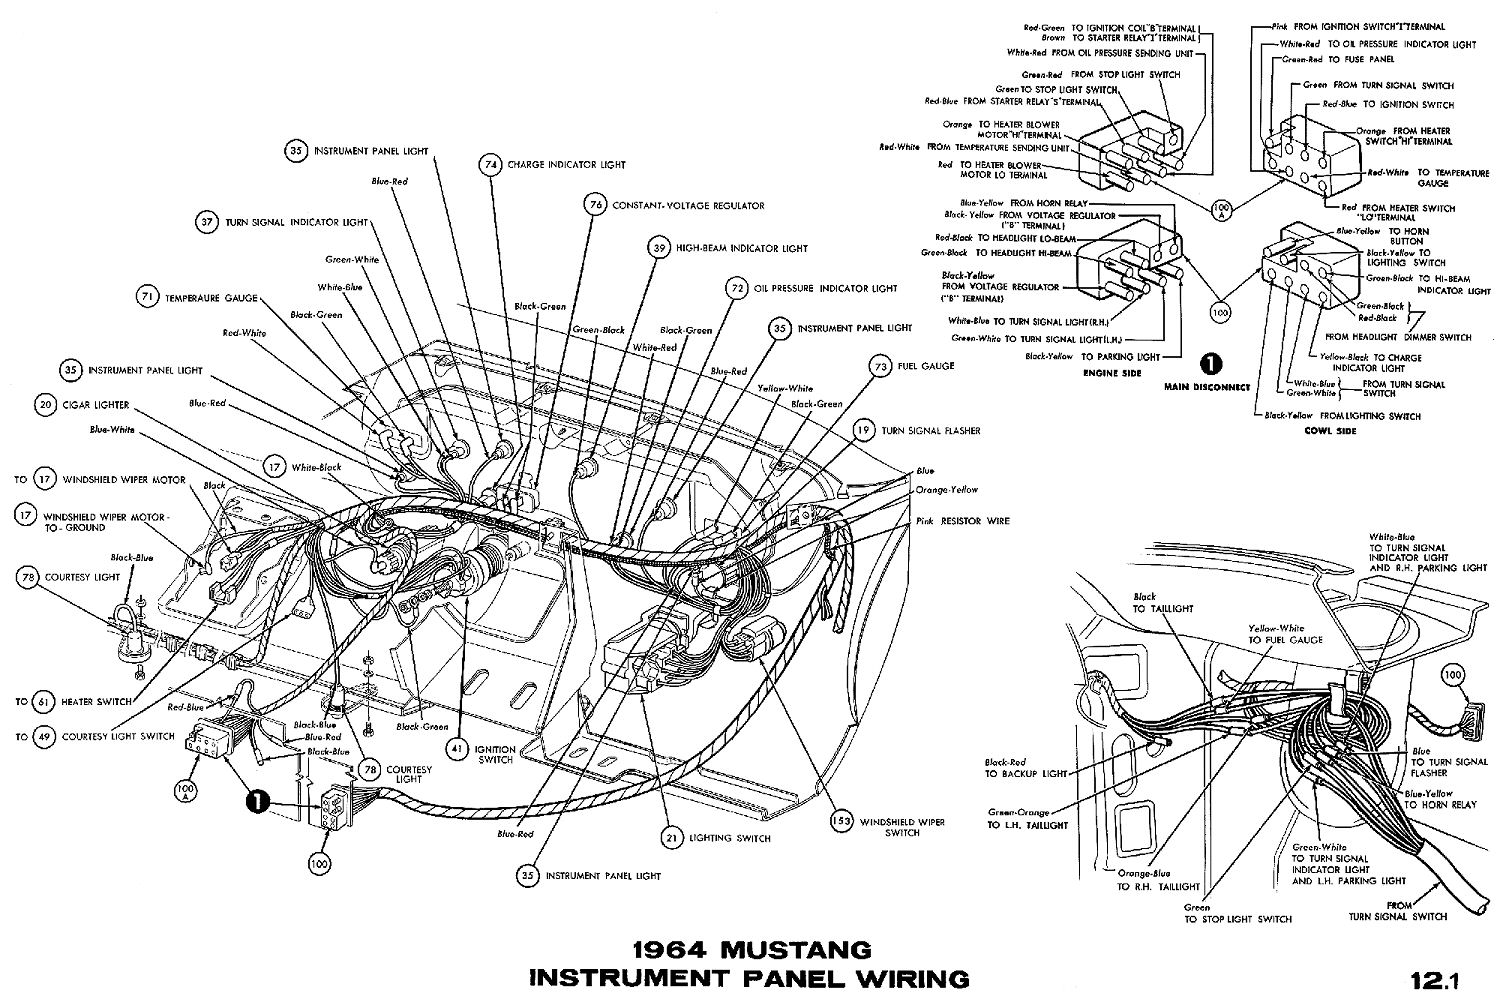 1967 Chevy C10 Fuse Box Diagram Wiring Schematic 1964 Mustang Diagrams Average Joe Restoration Instrument Cluster Connections